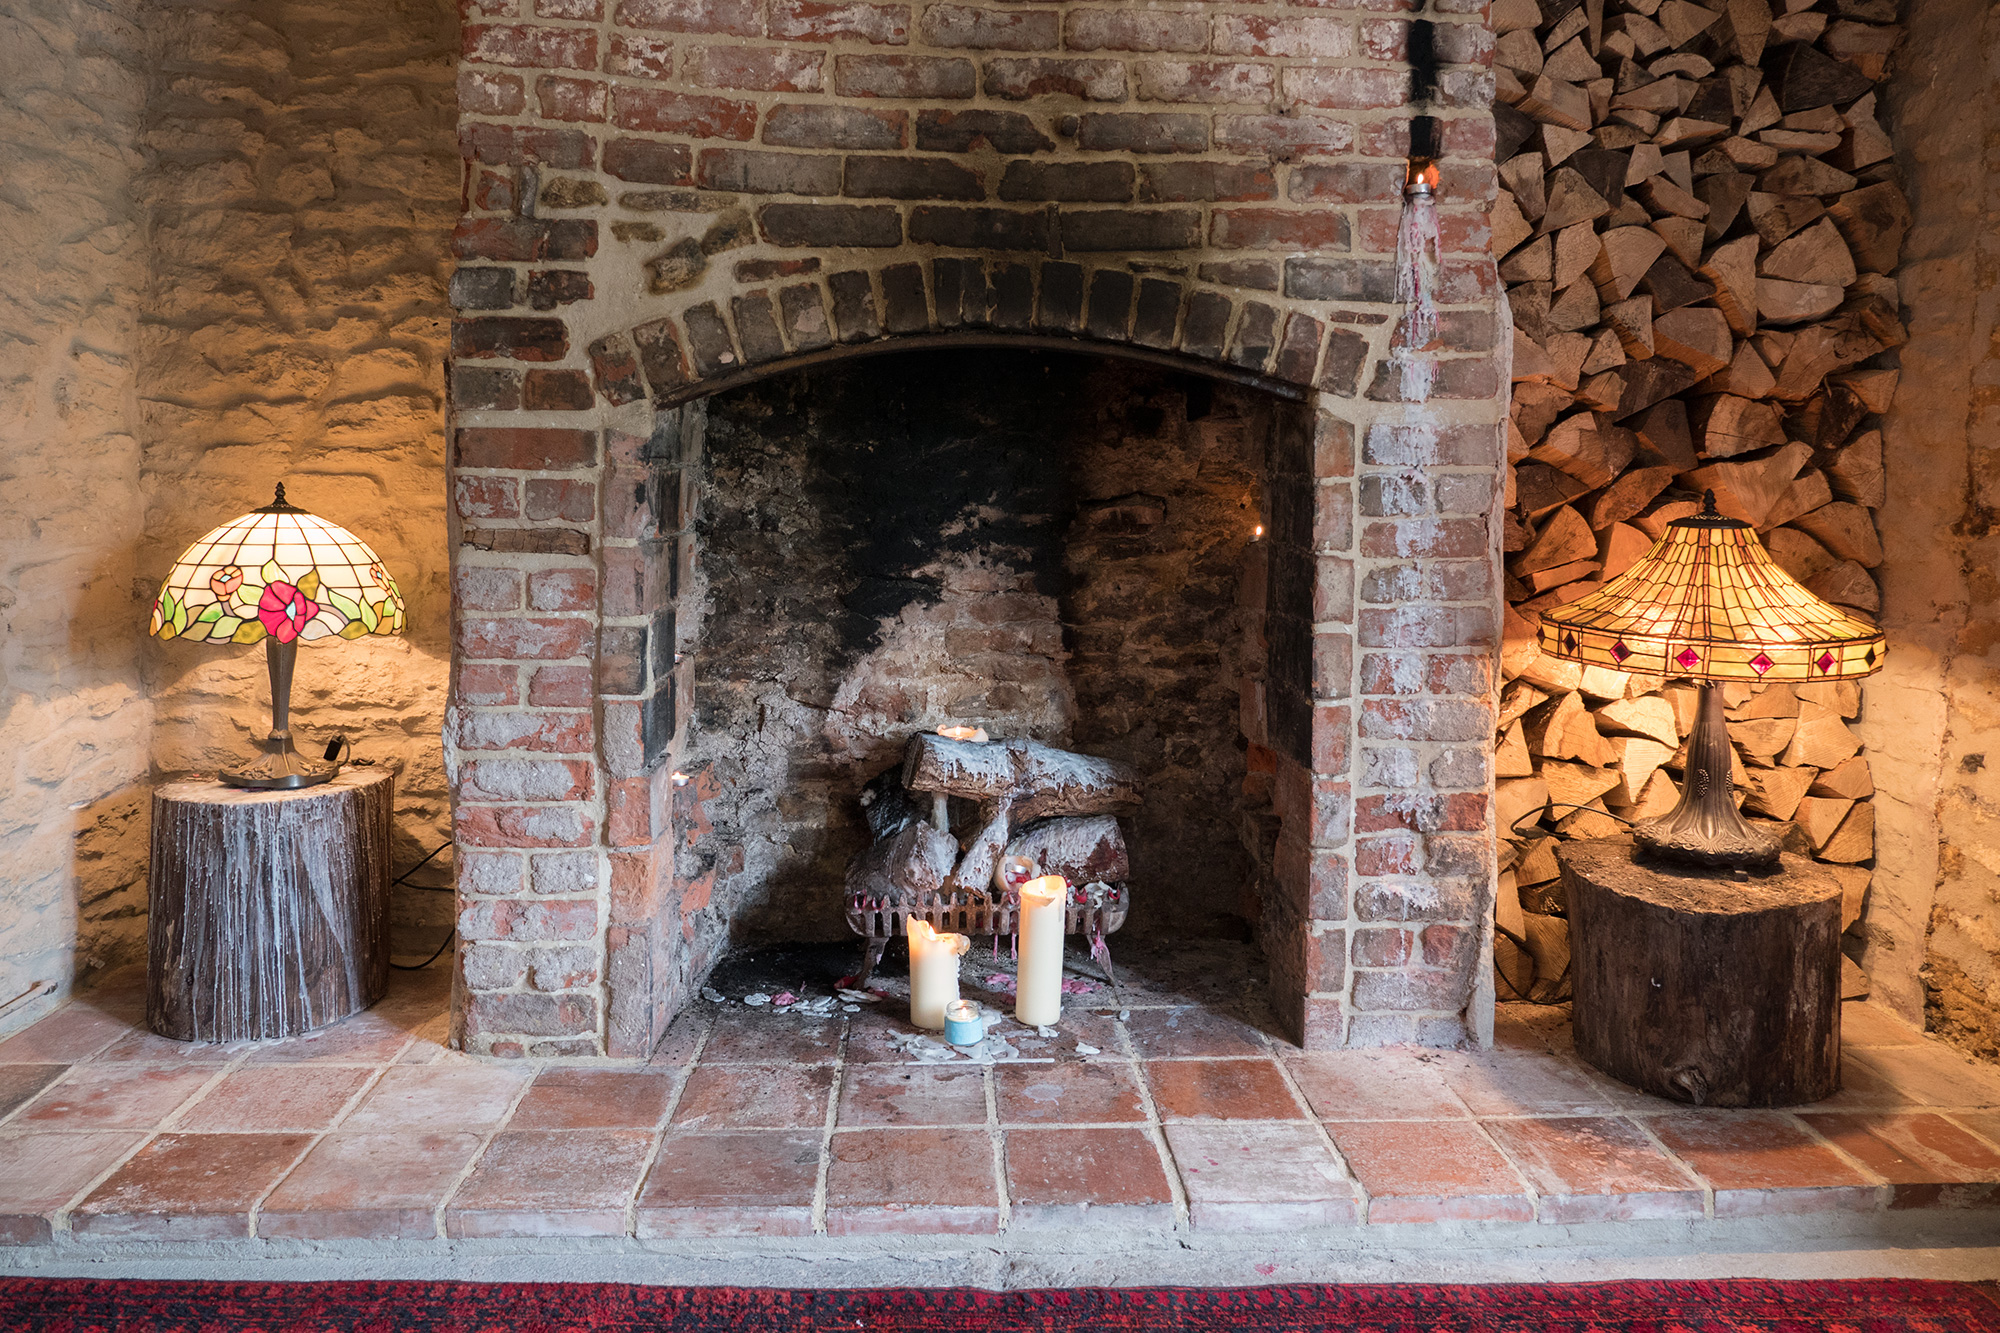 The magnificent original fireplace remained hidden for years but has now been revealed once more for all to enjoy